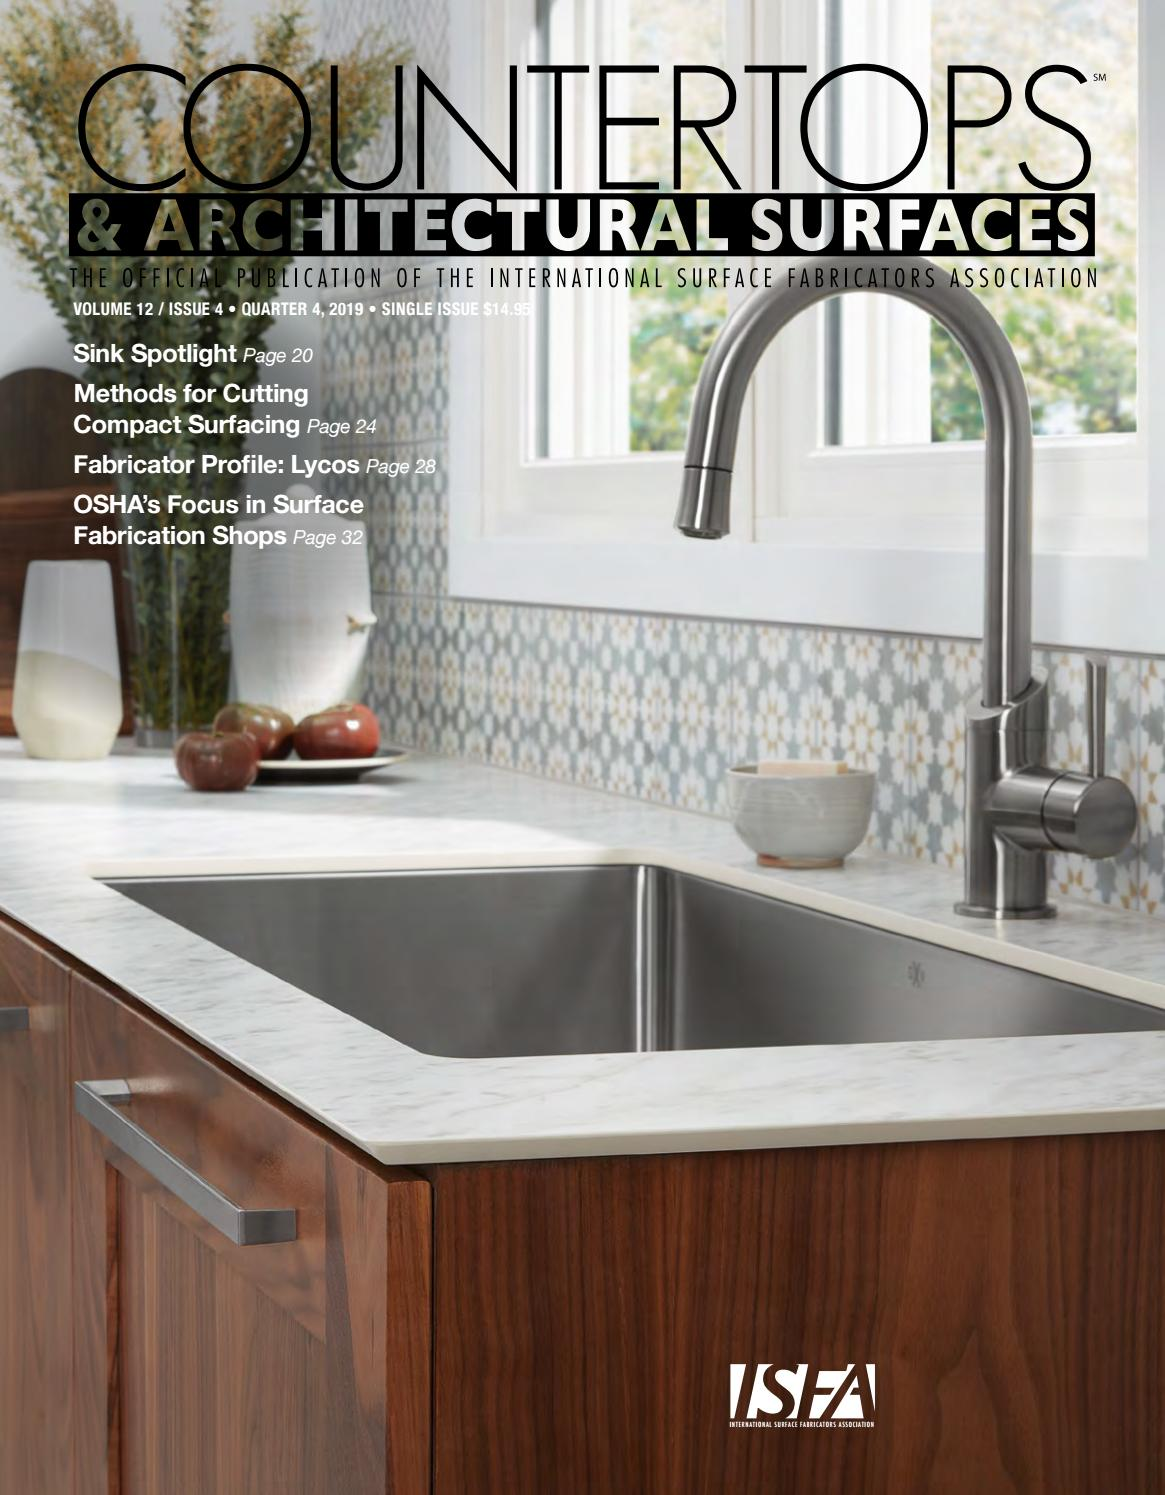 Isfa S Countertops Architectural Surfaces Vol 12 Issue 4 Q4 2019 By Isfa Issuu